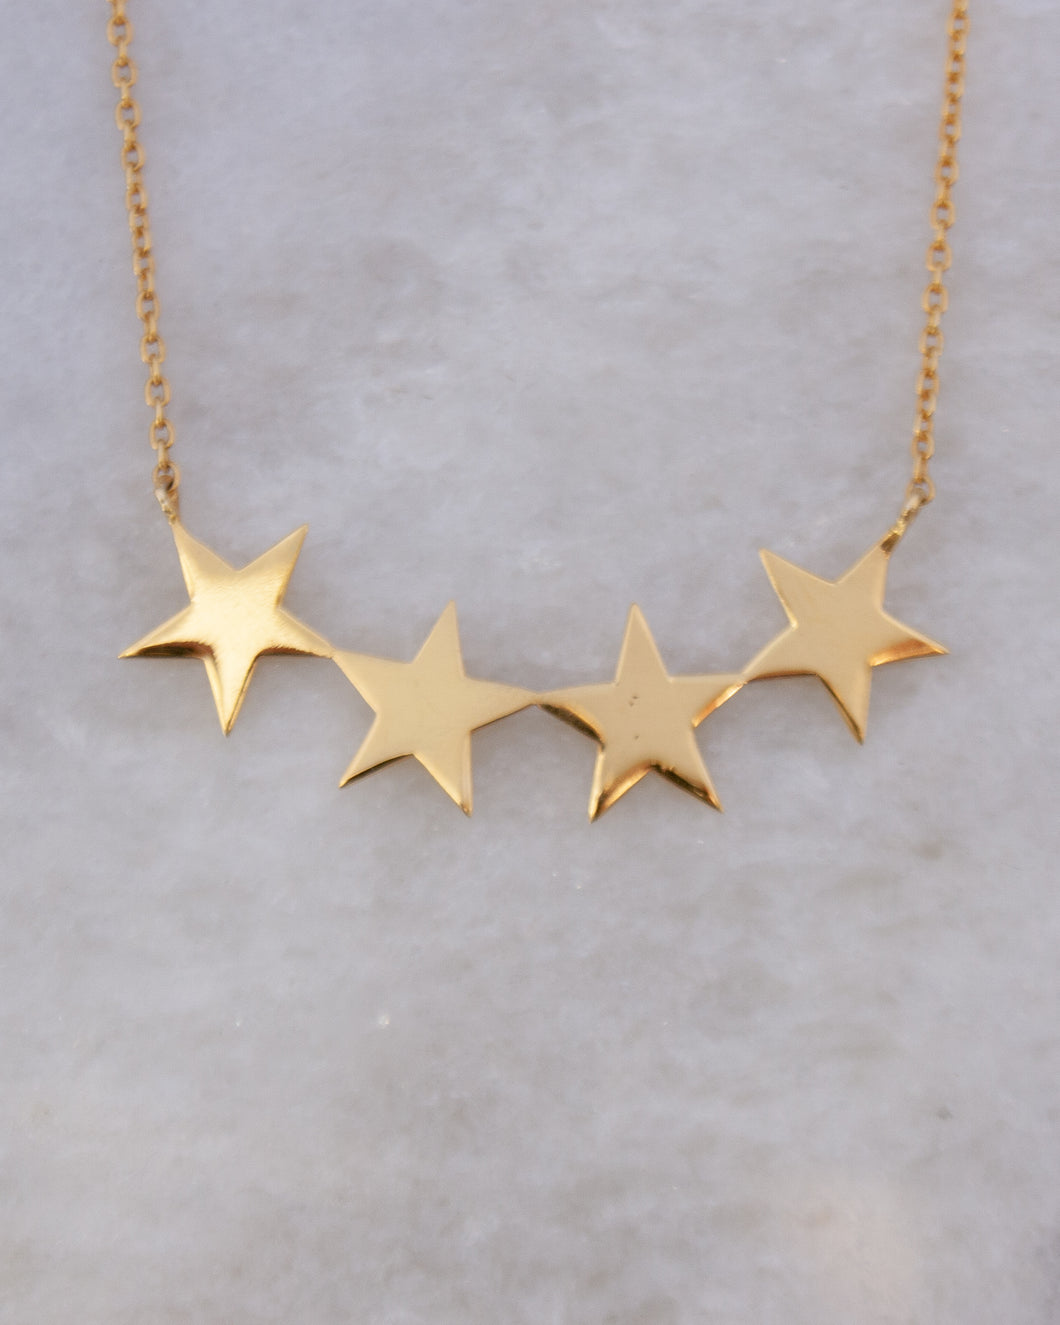 Stellar Arc Necklace